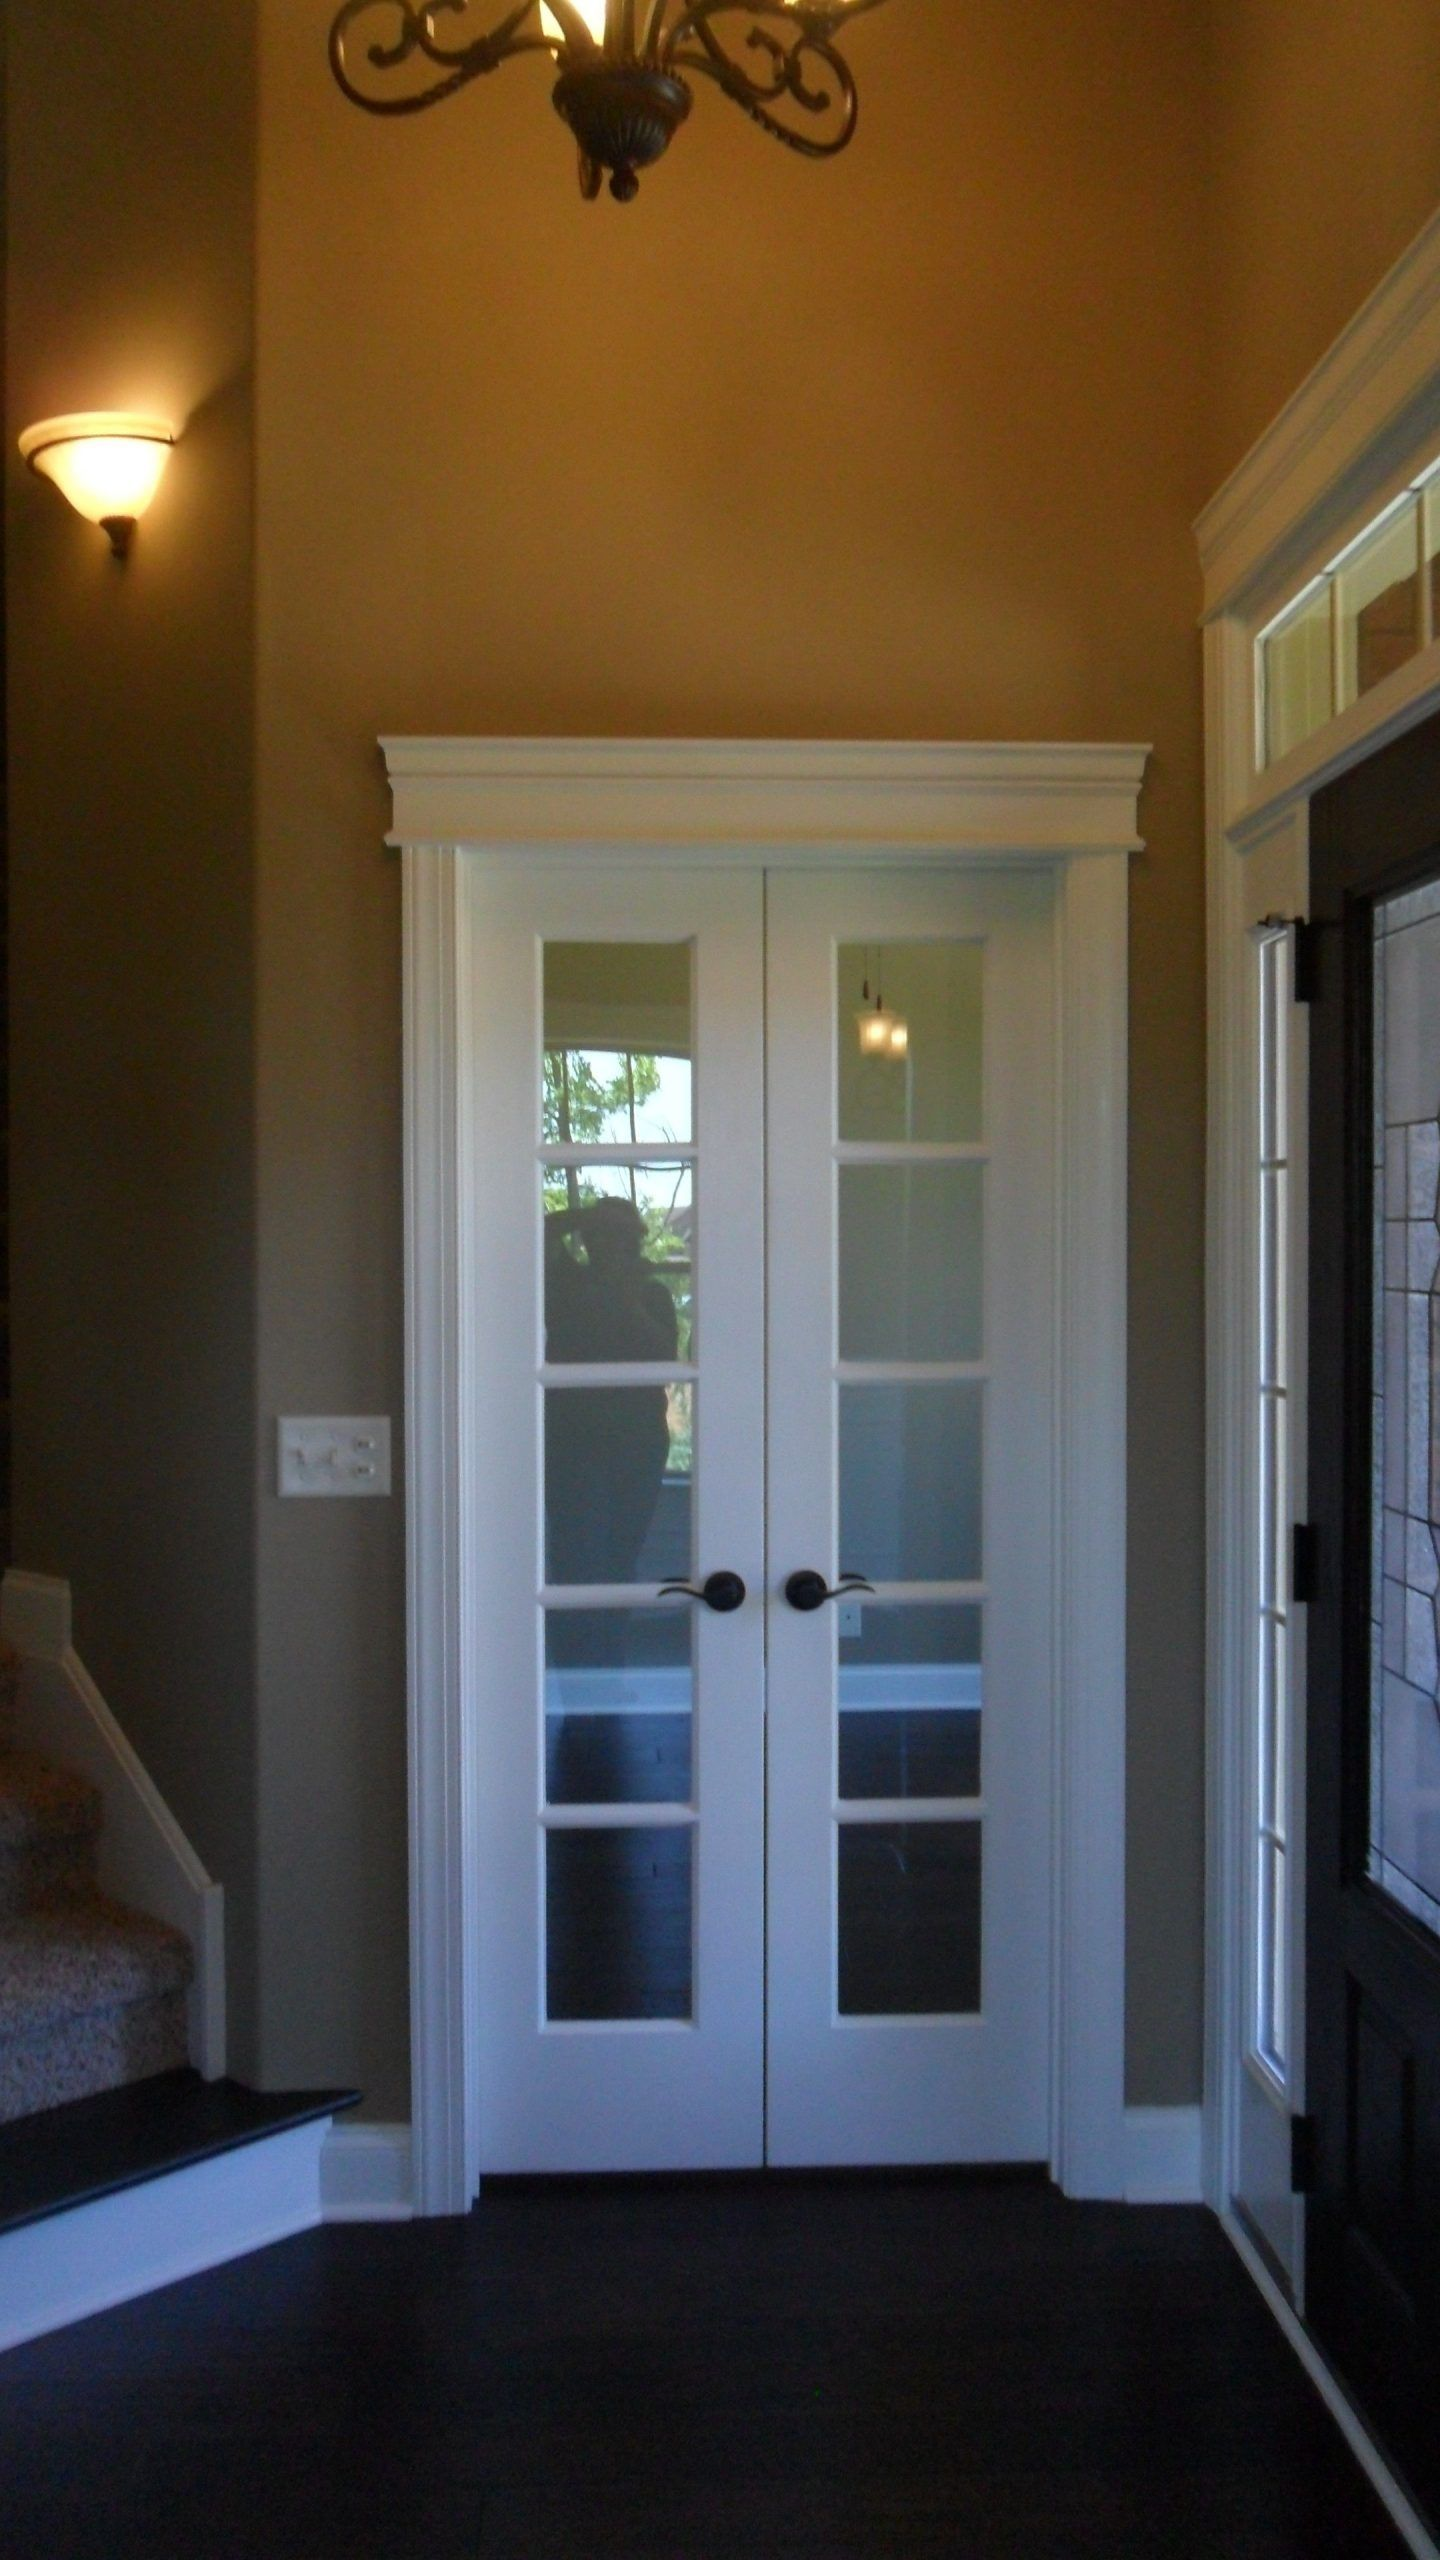 Interior French Doors To Patio Conversion Conversion Doors French Interior Patio In 2020 Door Curtains Diy French Doors Interior French Doors Patio